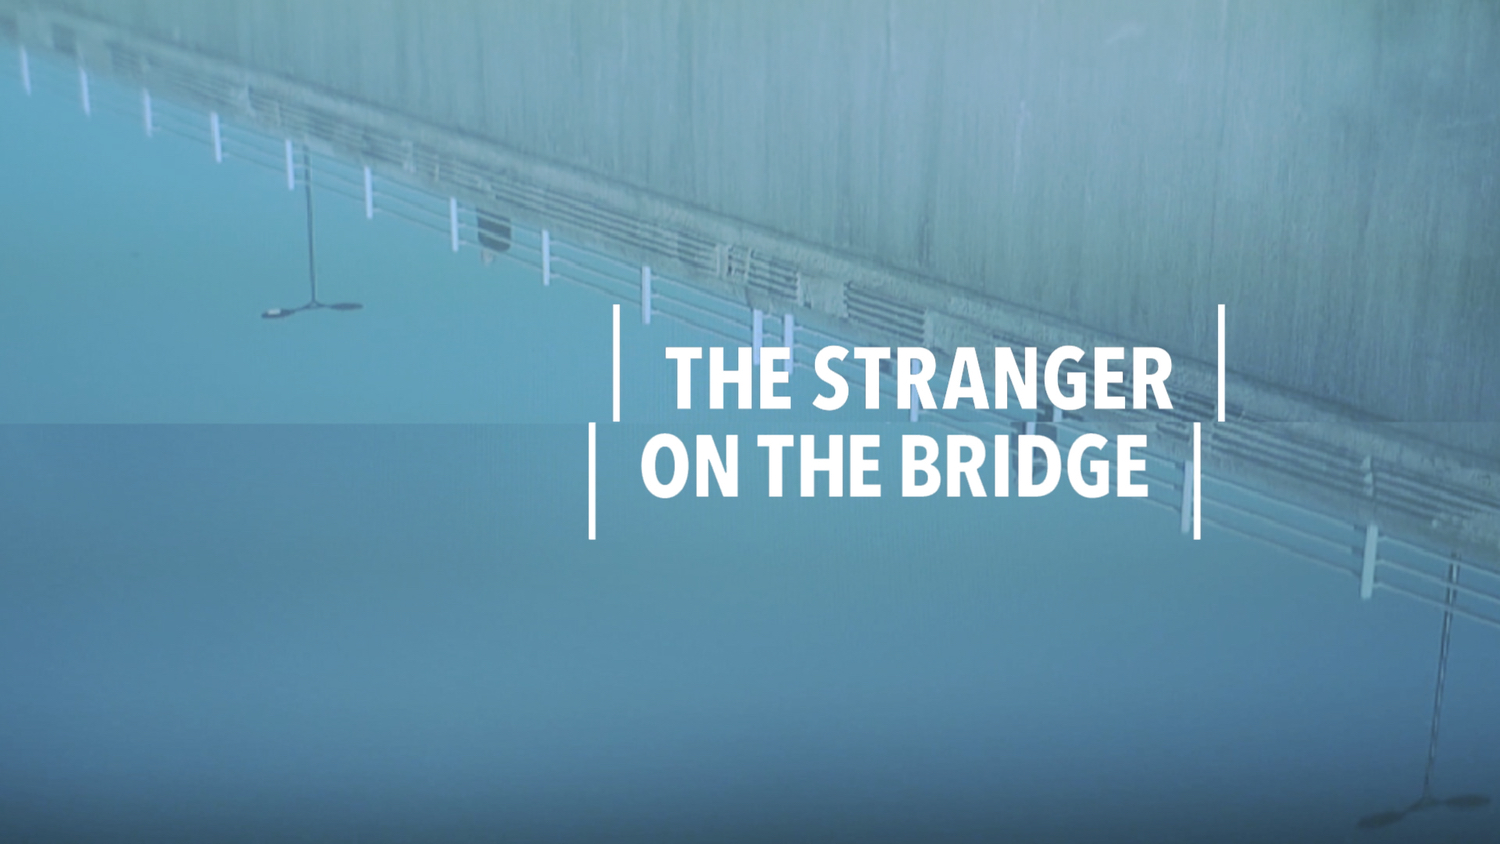 JESSICA MAY BUXTON & BRYN HOLDING / THE STRANGER ON THE BRIDGE